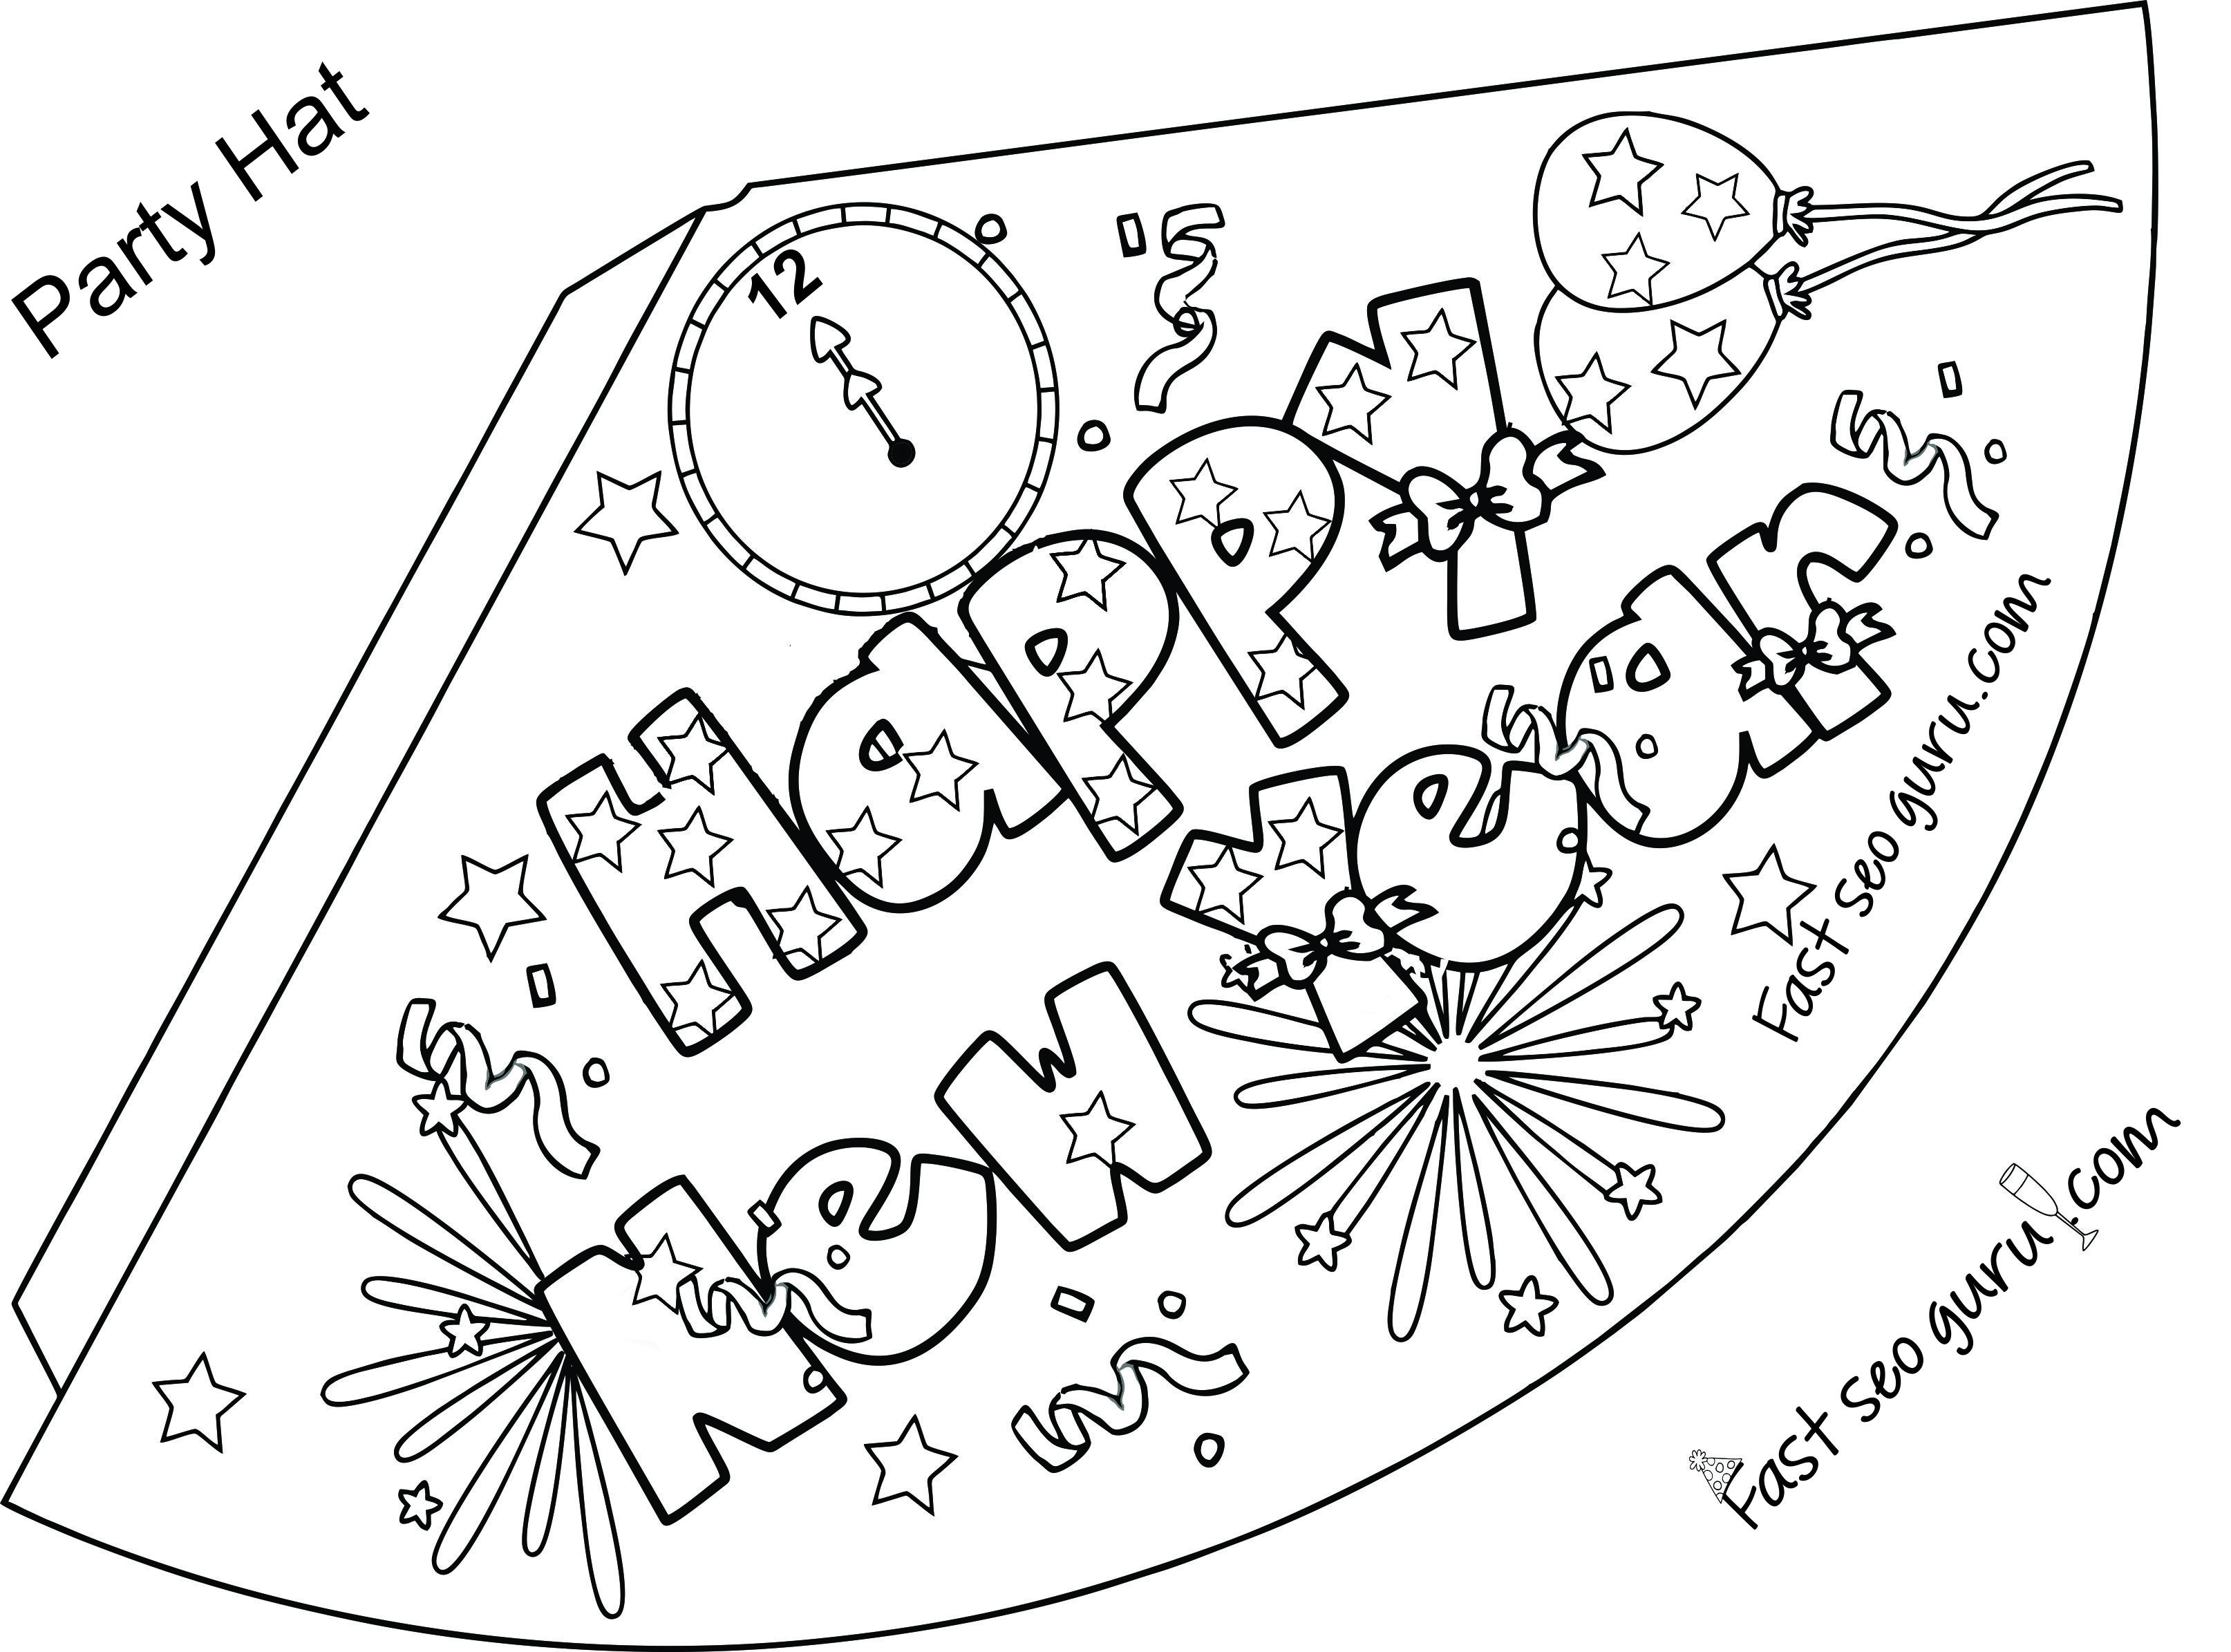 Print Out Happy New Year Party Hat Coloring For Kids New Year Coloring Pages Kids Printable Coloring Pages New Years Hat